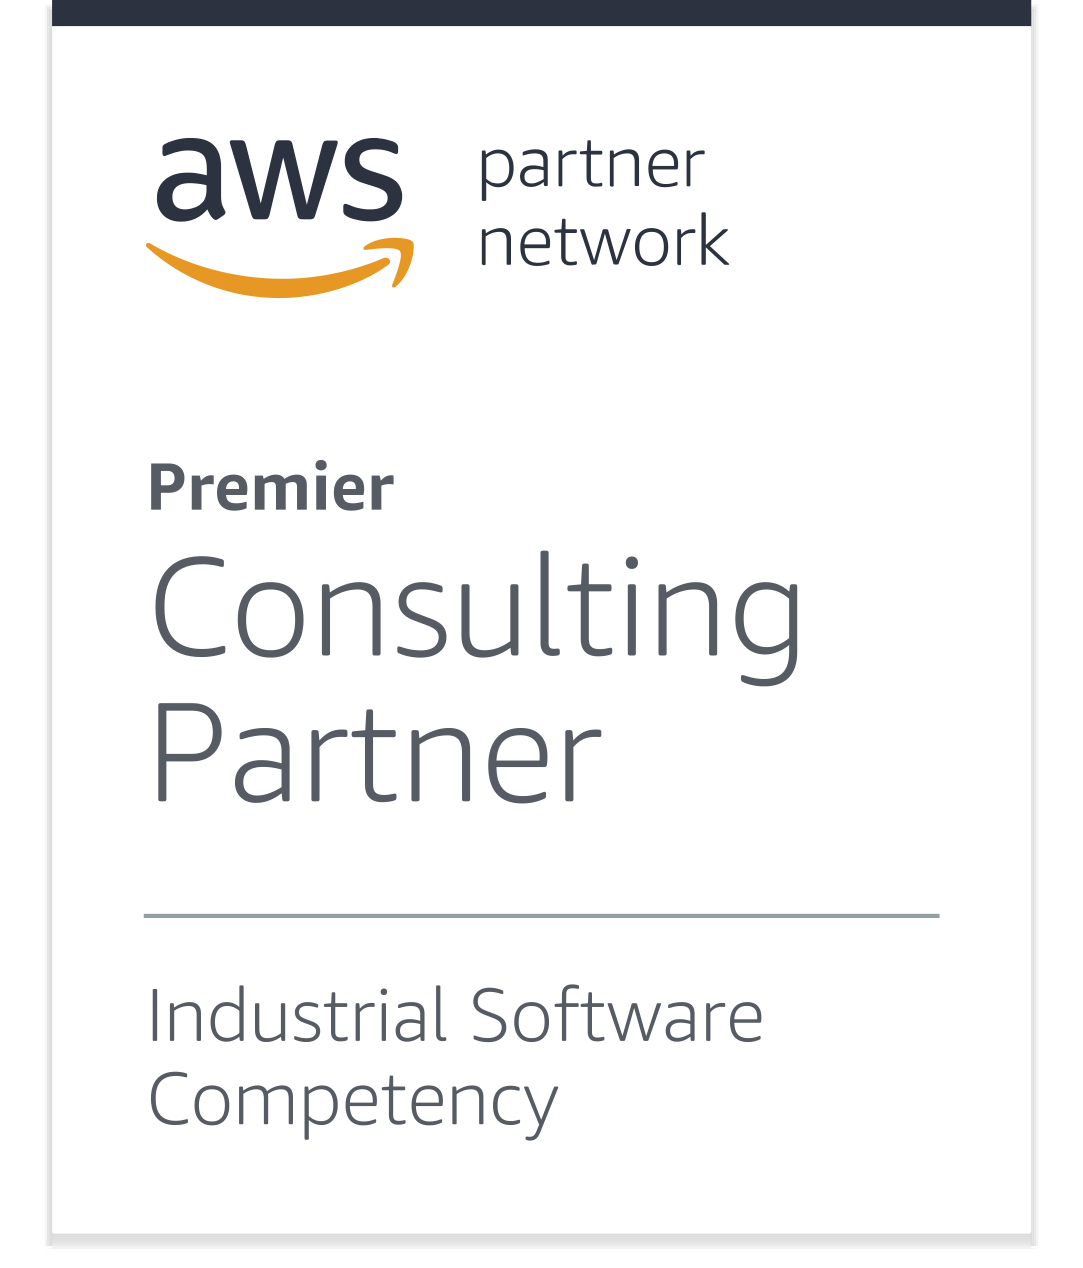 Industrial Software Competency